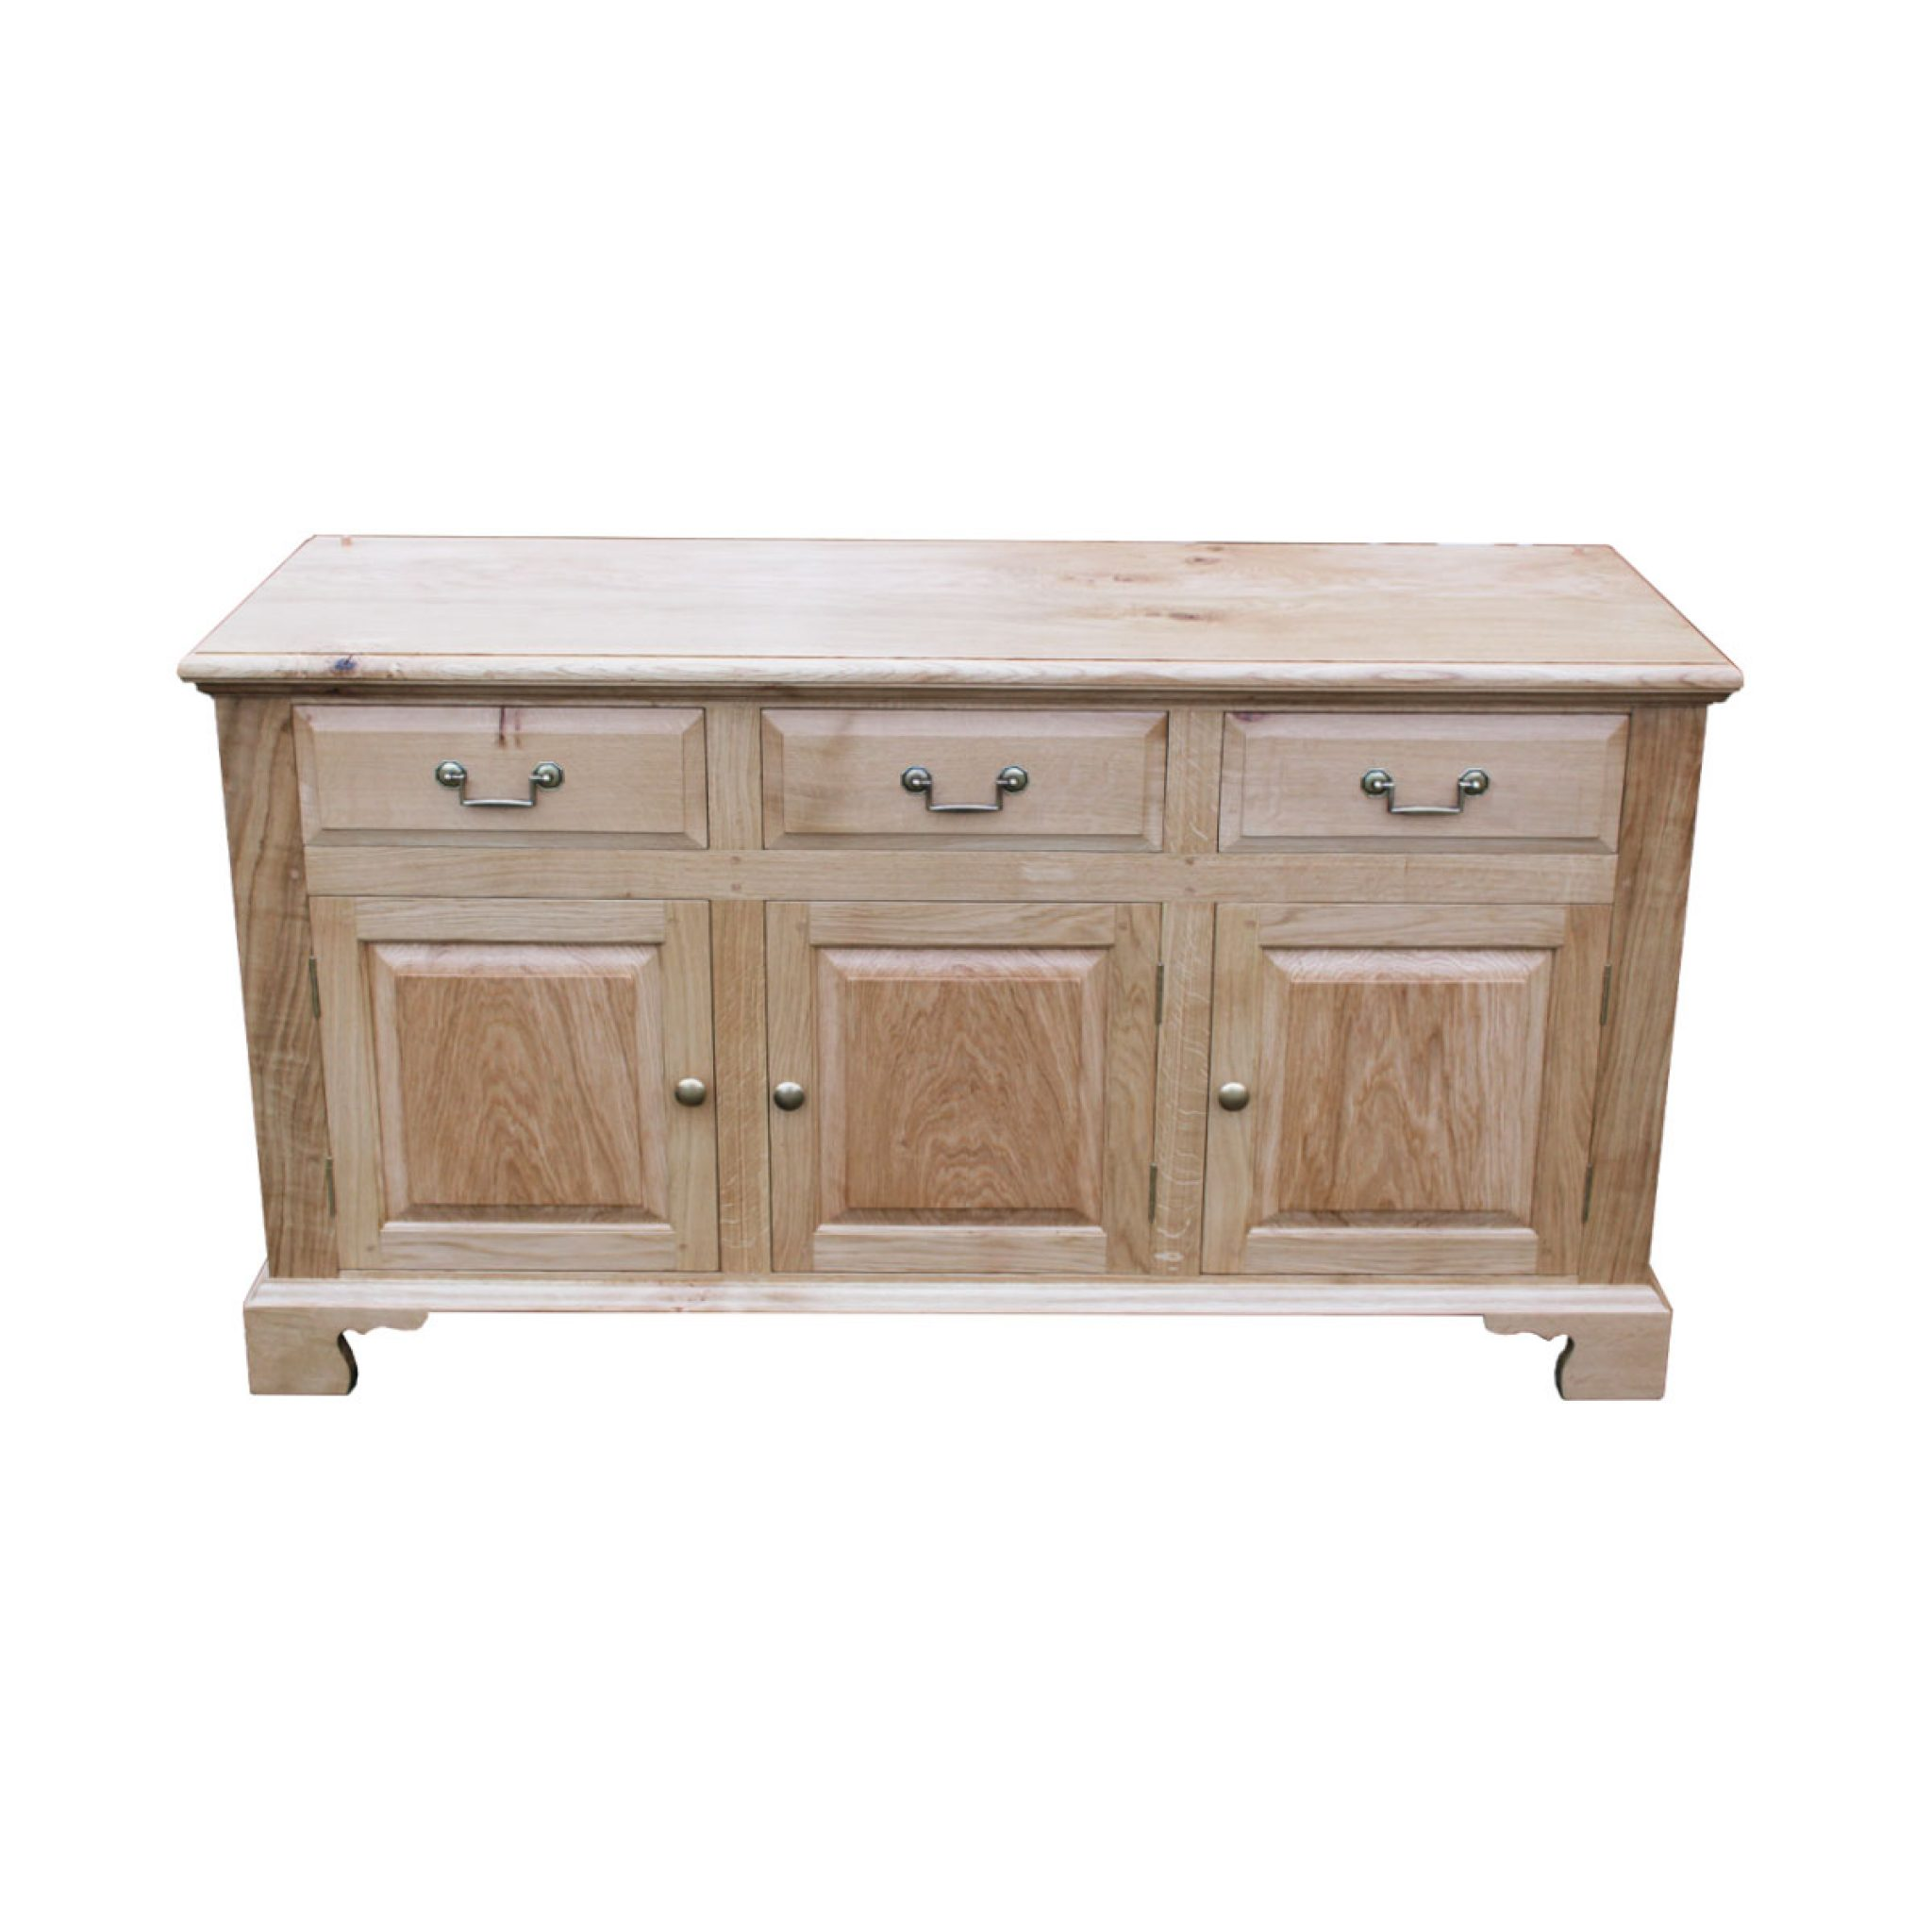 Handmade Oak Furniture Southend on Sea